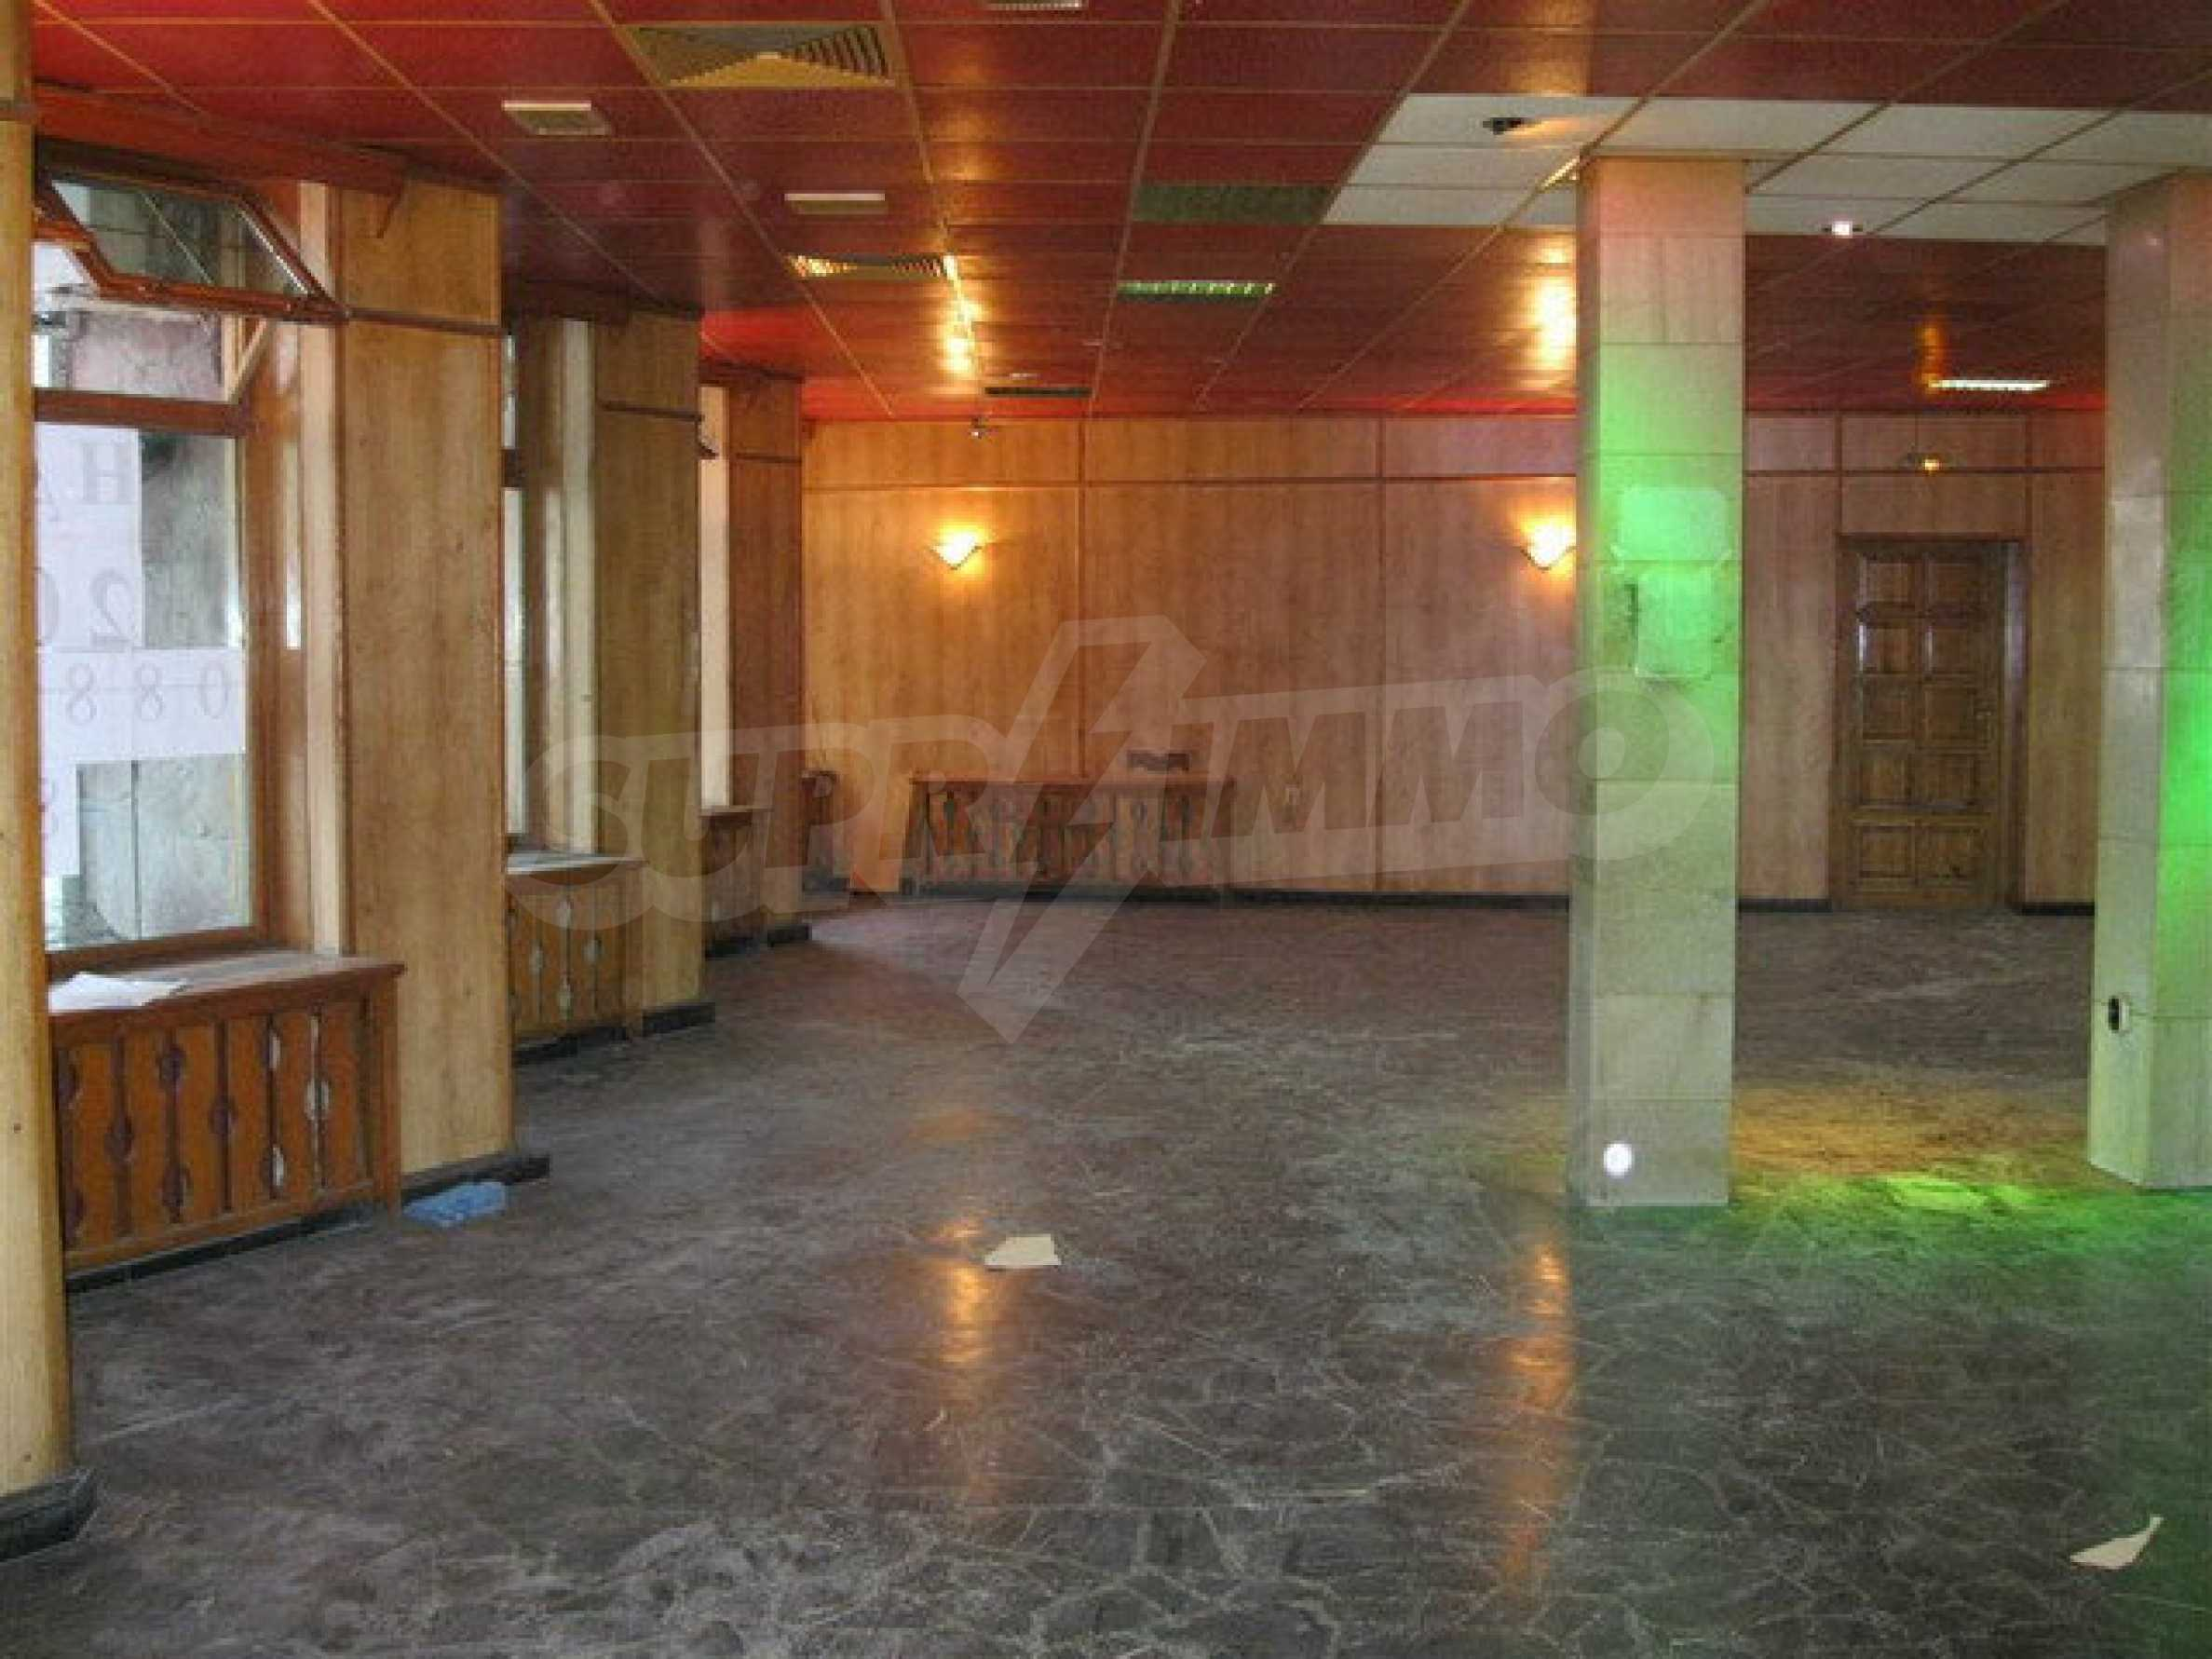 Commercial property on 3 levels for sale in Veliko Tarnovo  53